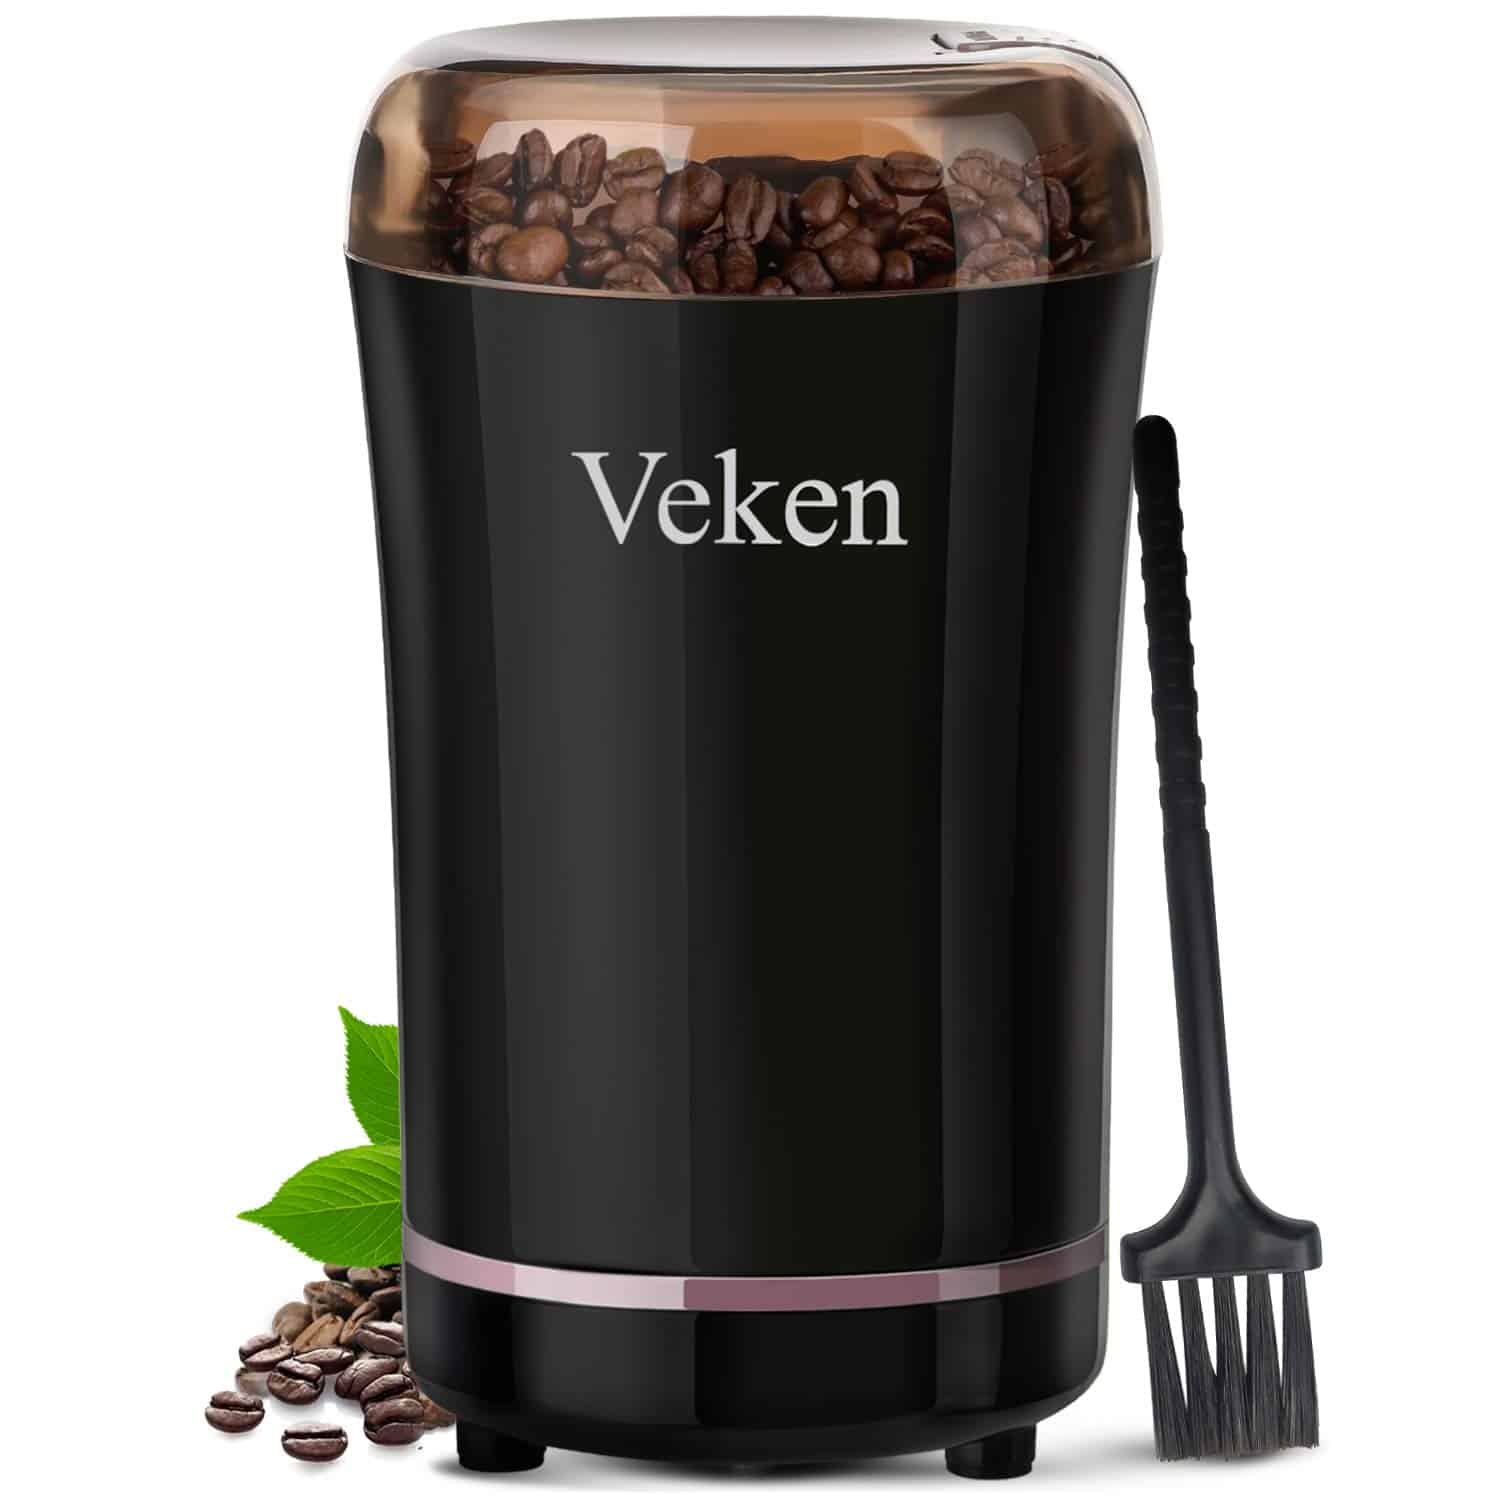 Veken Electric Coffee and Spice Grinder